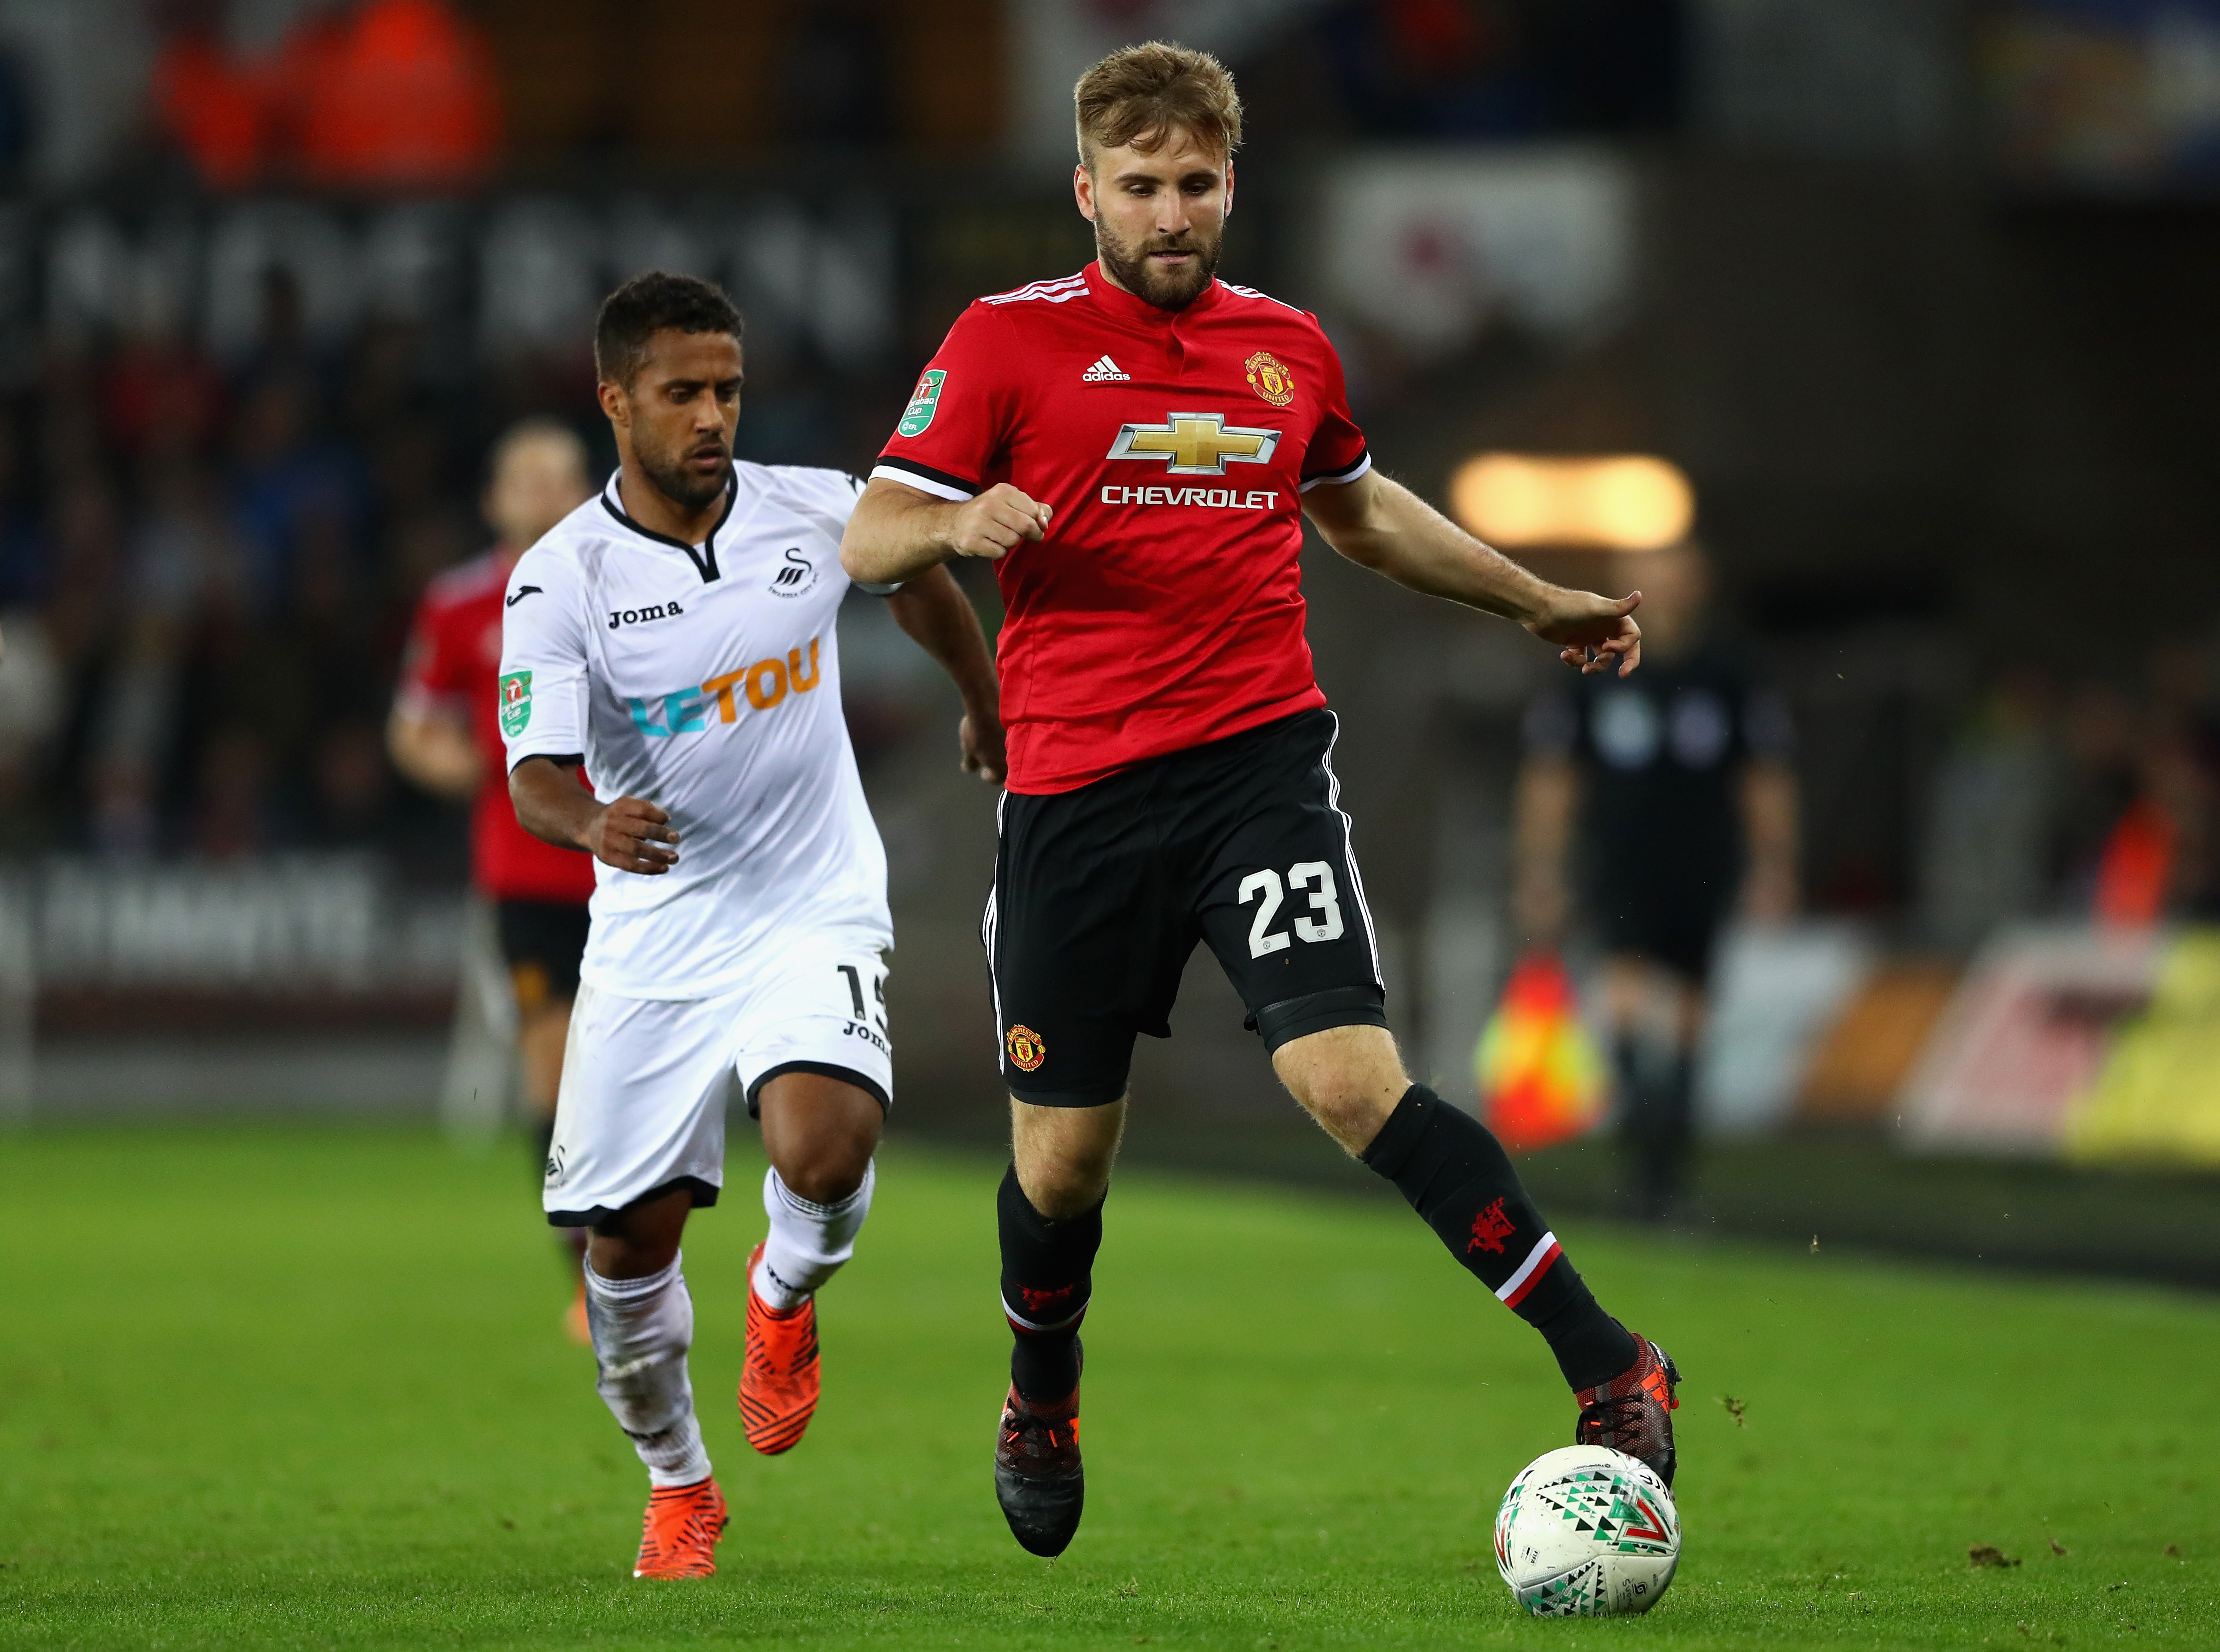 Luke Shaw His history and future with Manchester United